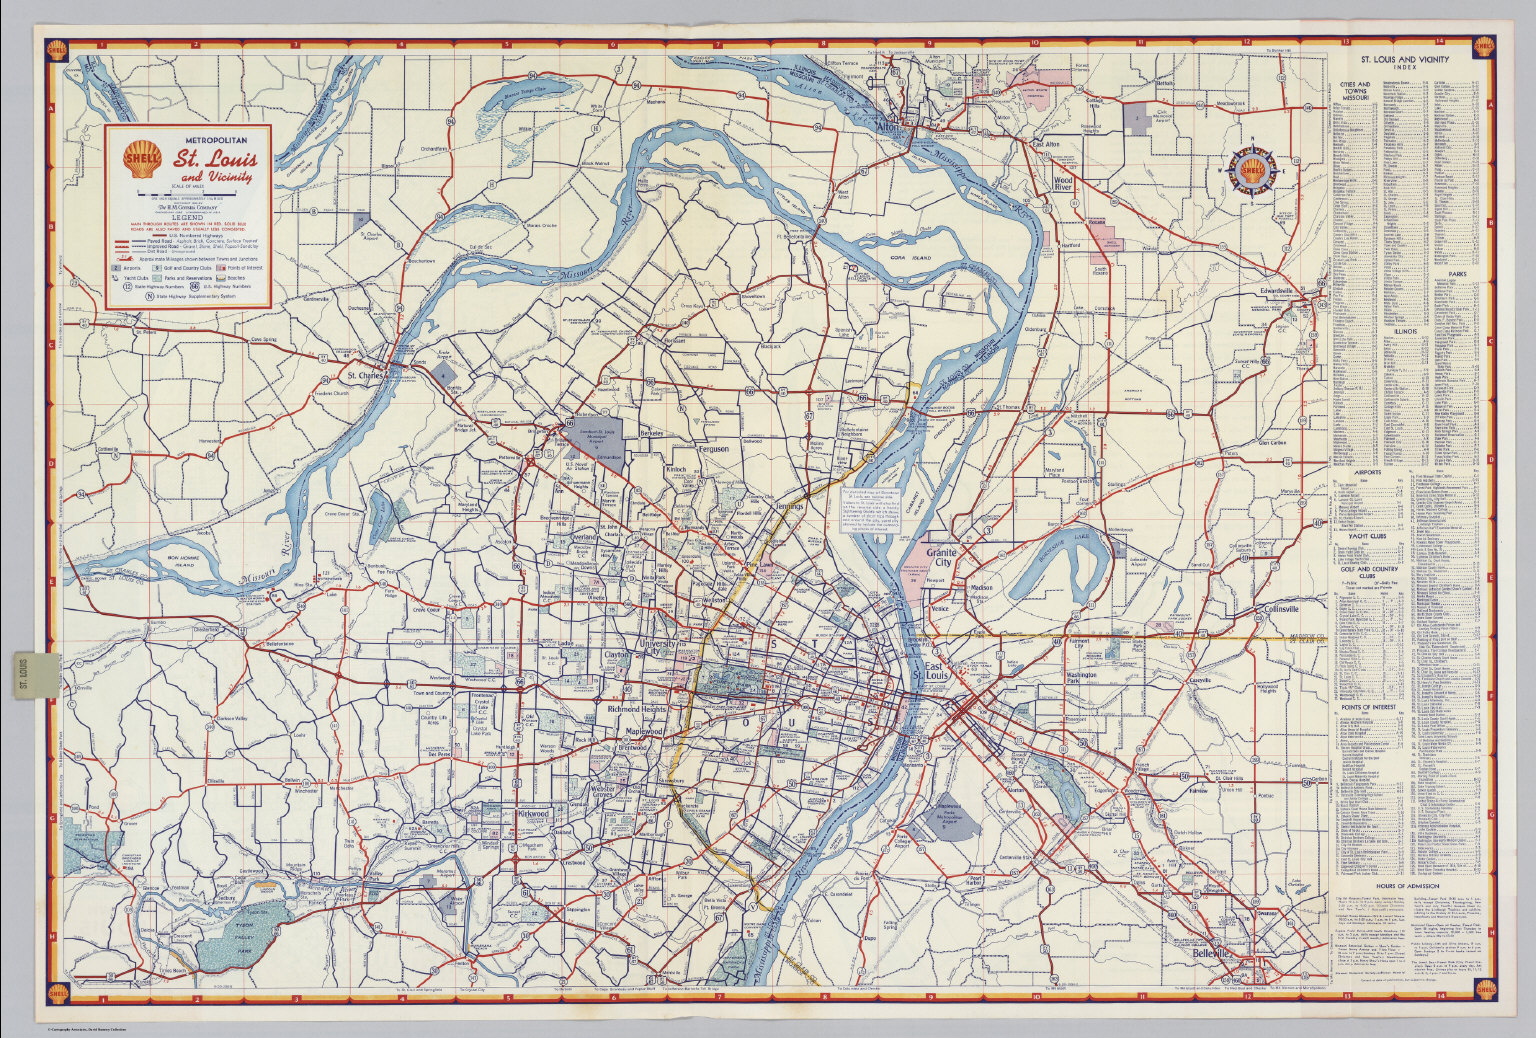 St Louis Map Pictures to Pin on Pinterest PinsDaddy